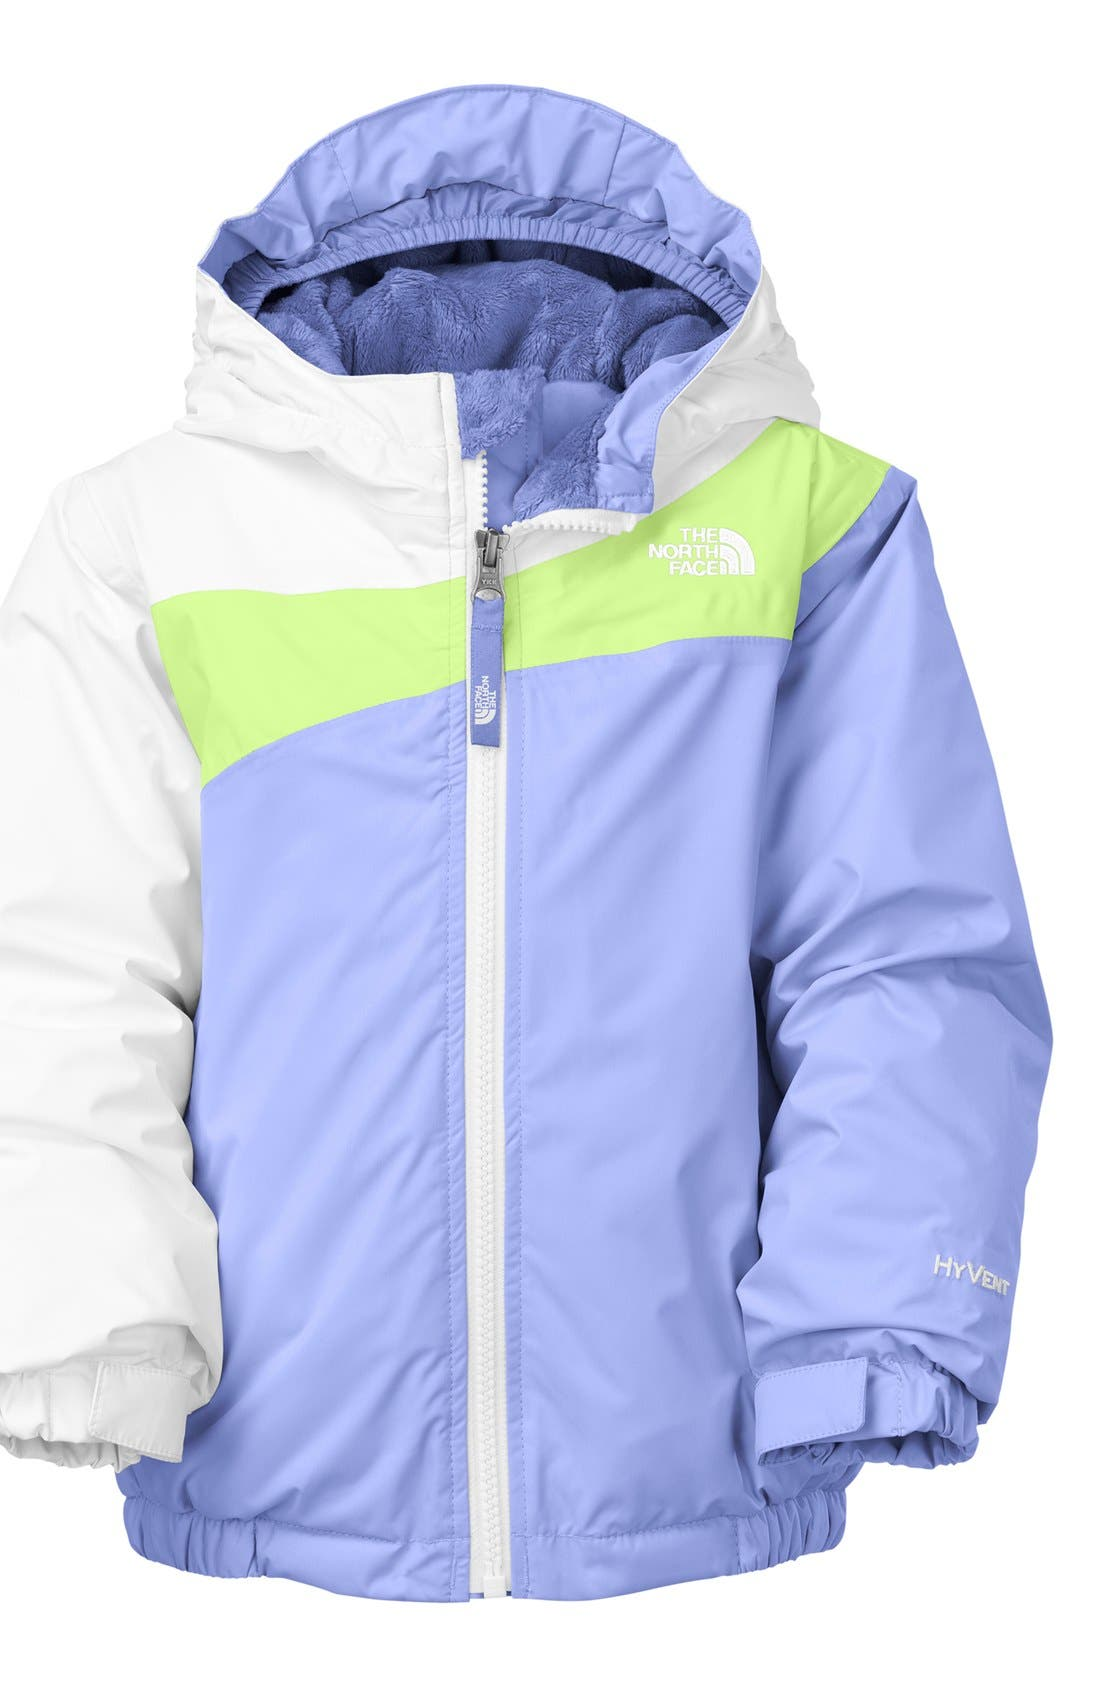 Main Image - The North Face 'Poquito' Insulated Jacket (Toddler Girls)